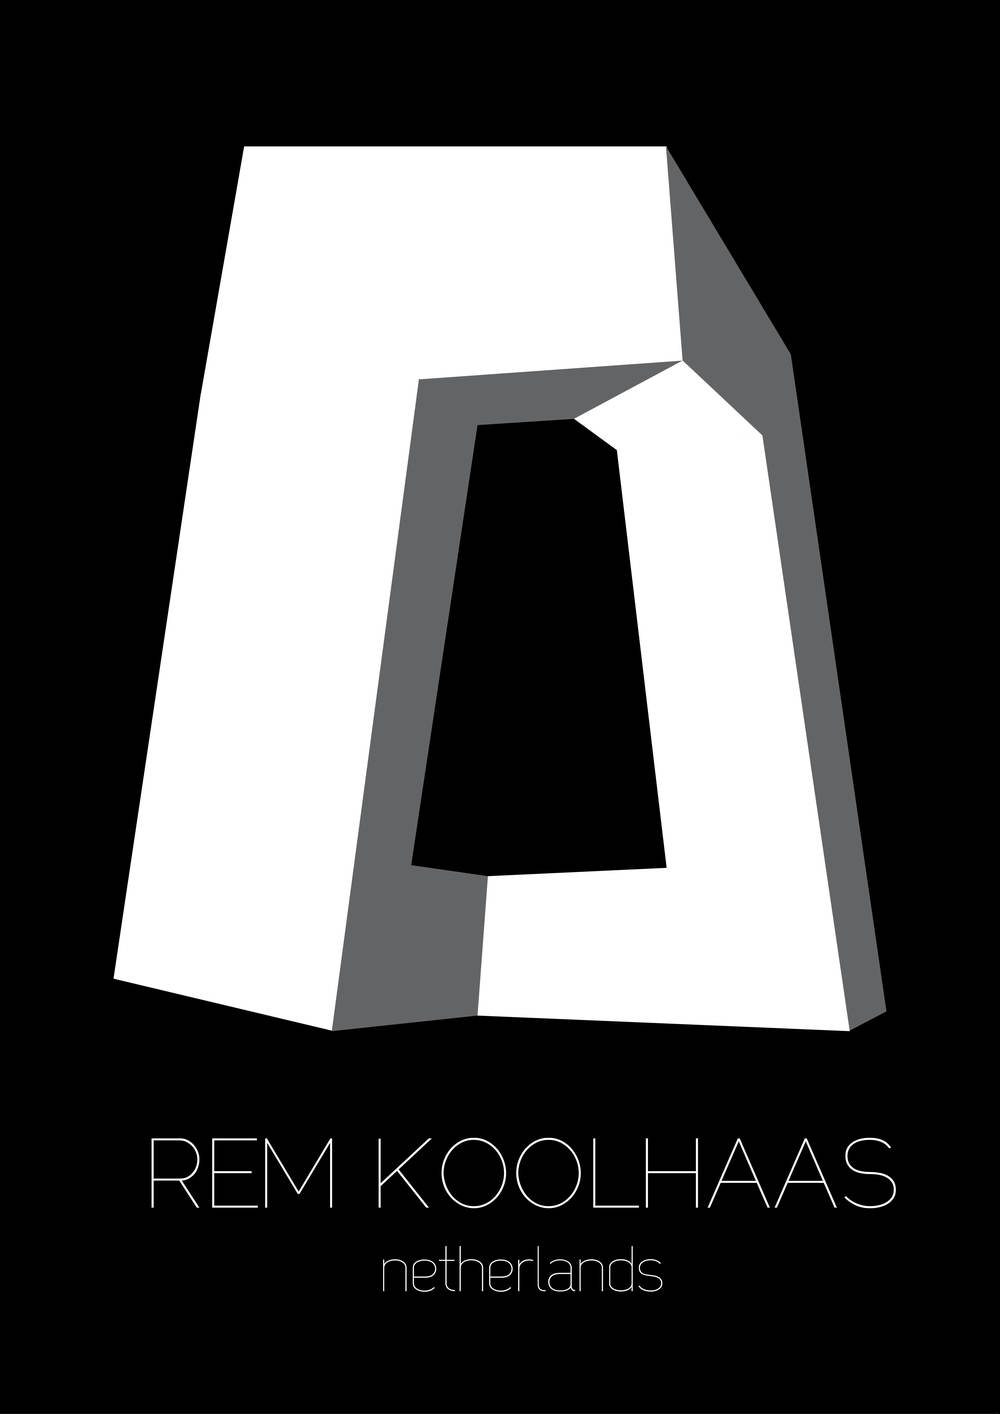 Poster d'architecture, Rem Koolhaas - www.marionchibrard.com   please do not remove images credits